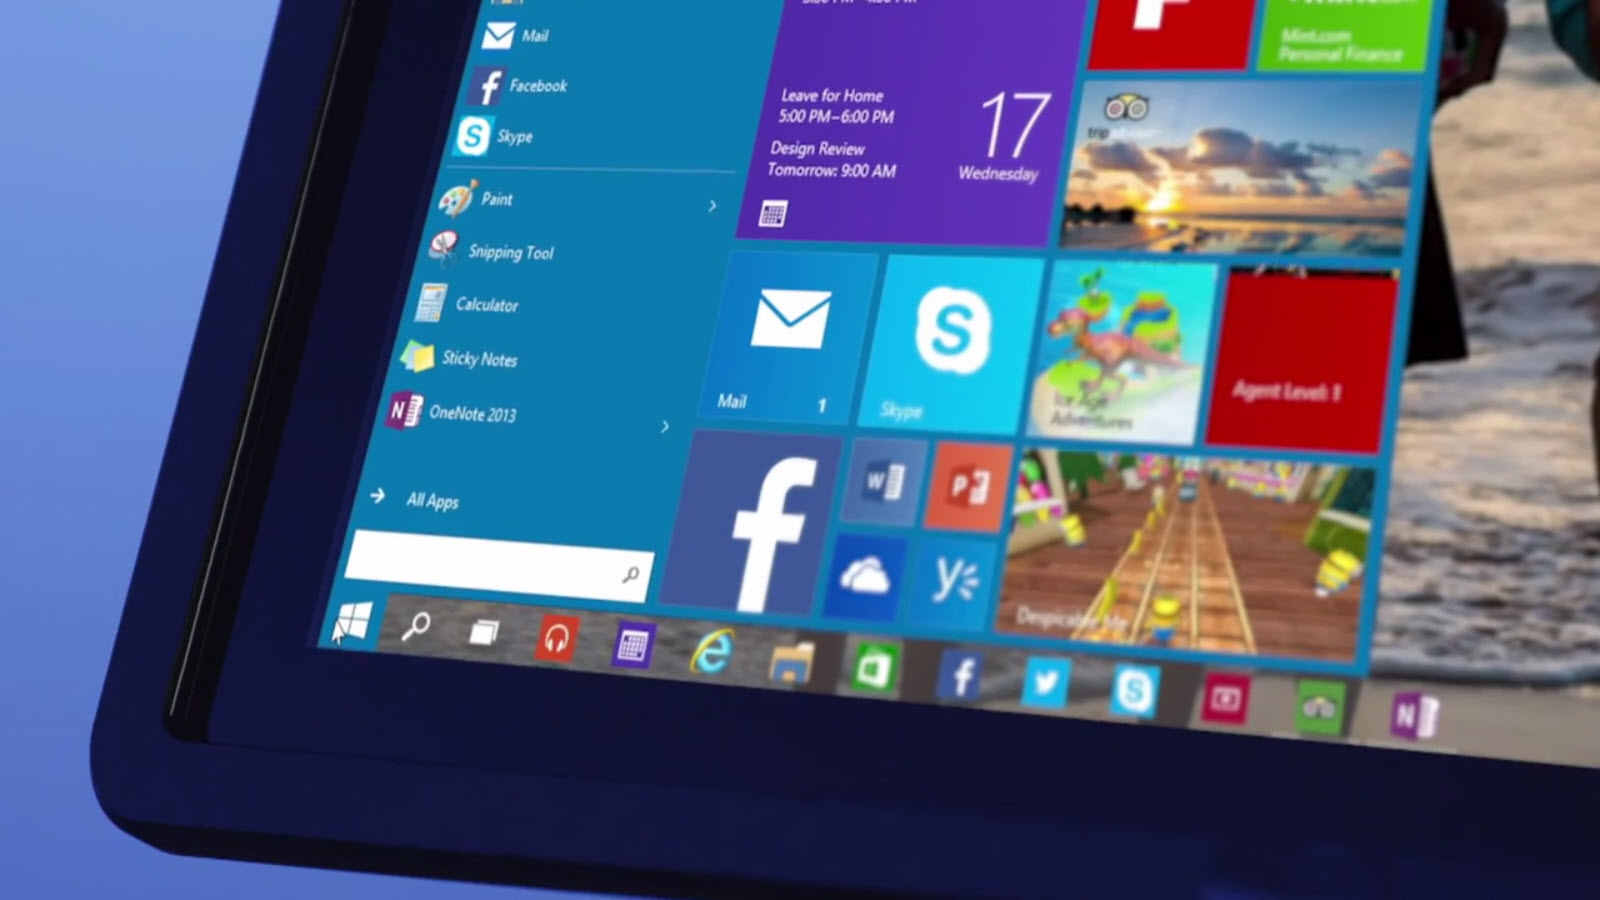 Windows 10 will be free for Windows 7 and 8.1 users for one year